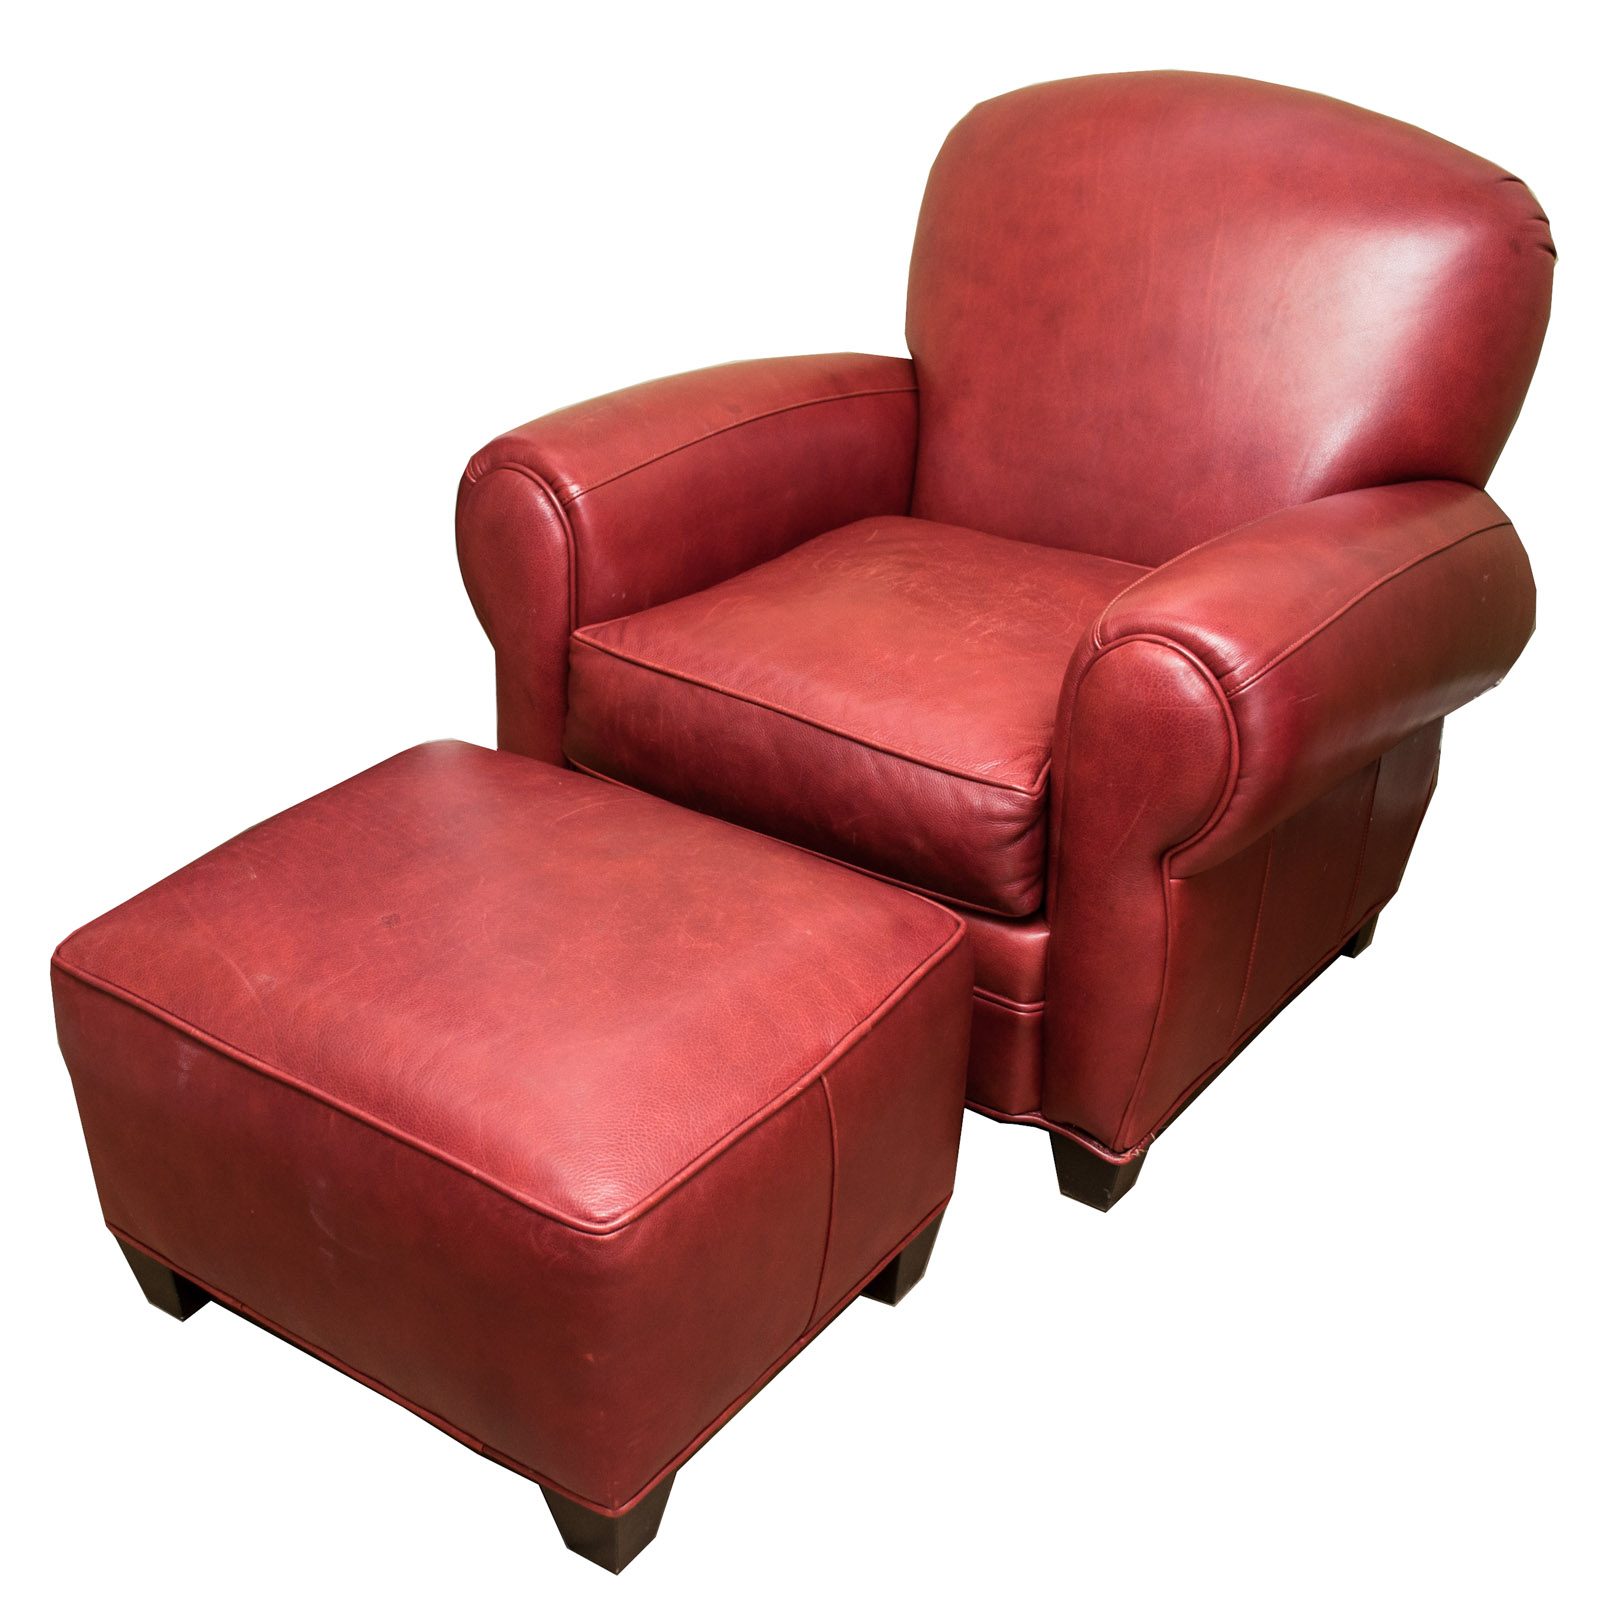 red leather chair and ottoman rocking dildo by arhaus furniture ebth